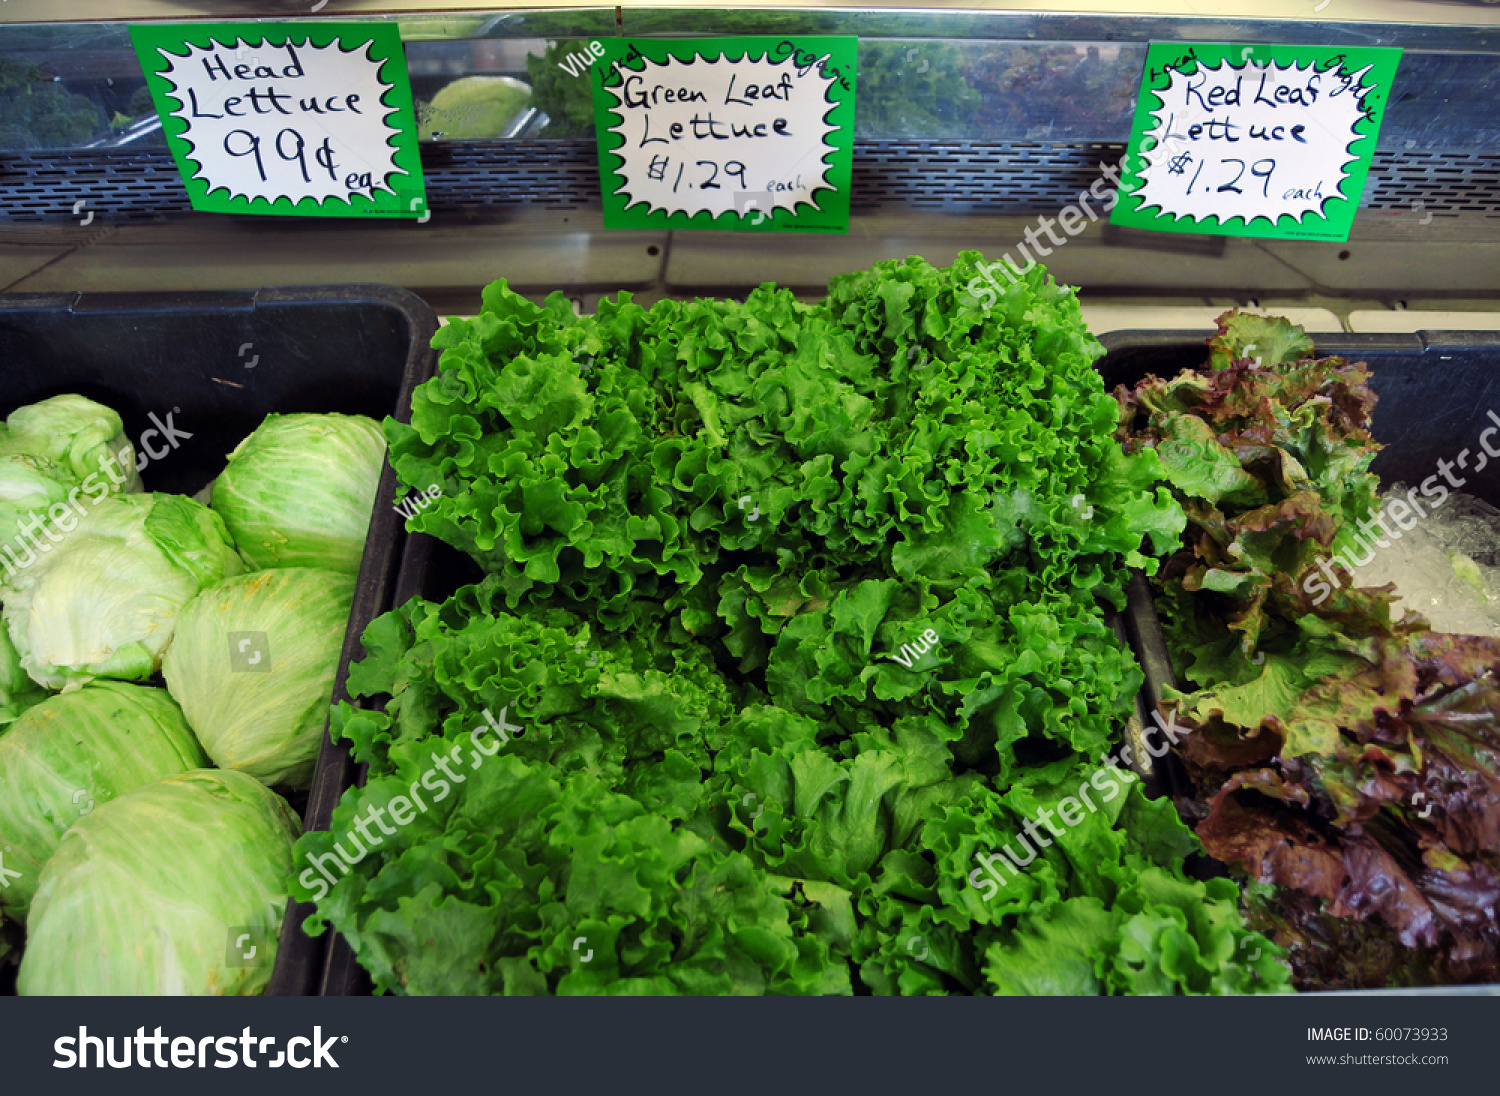 Grocery Store Lettuce